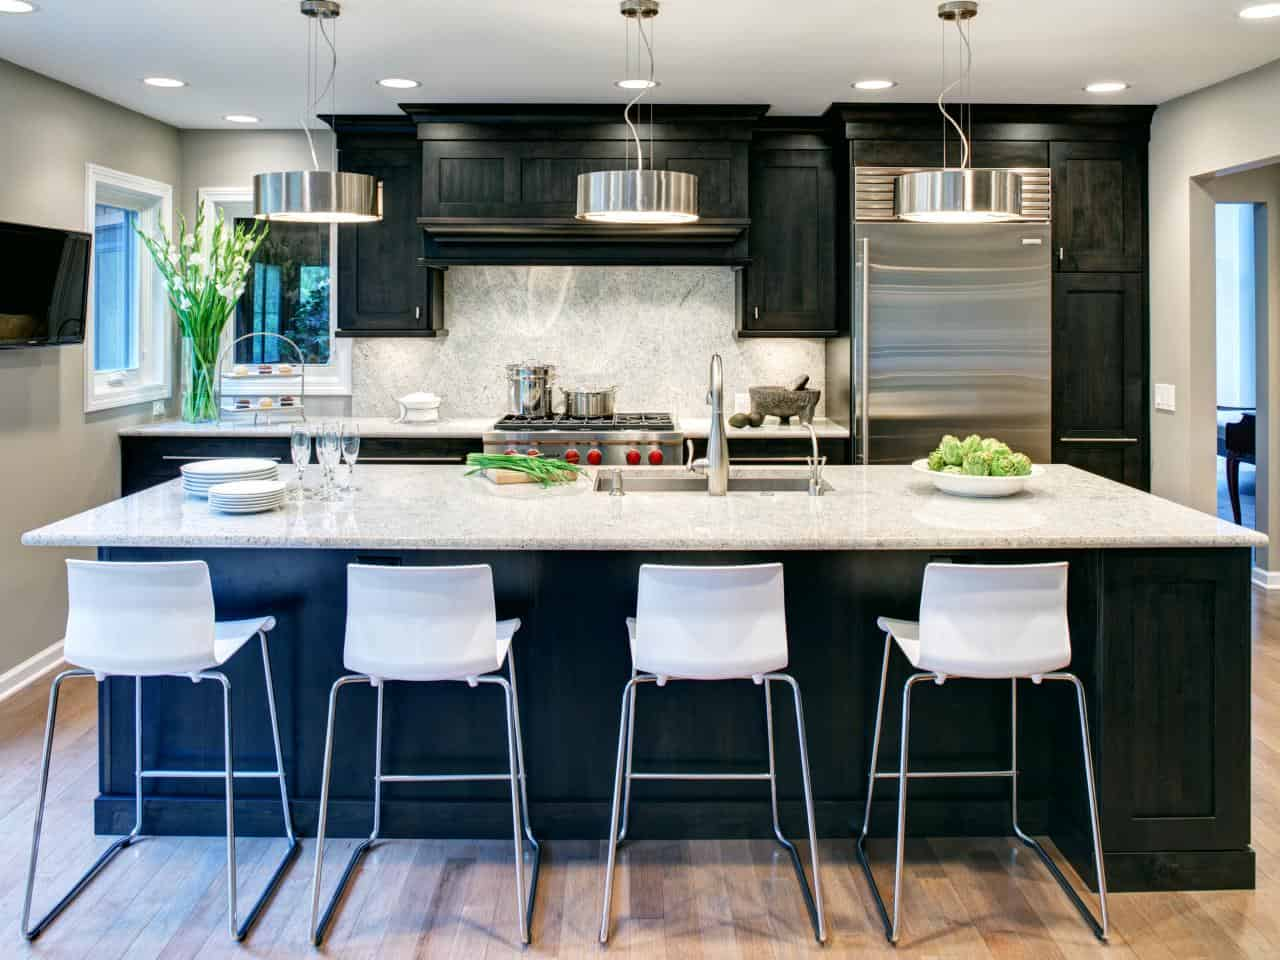 Chic, trendy Kitchen island upgrades that instantly refresh the room